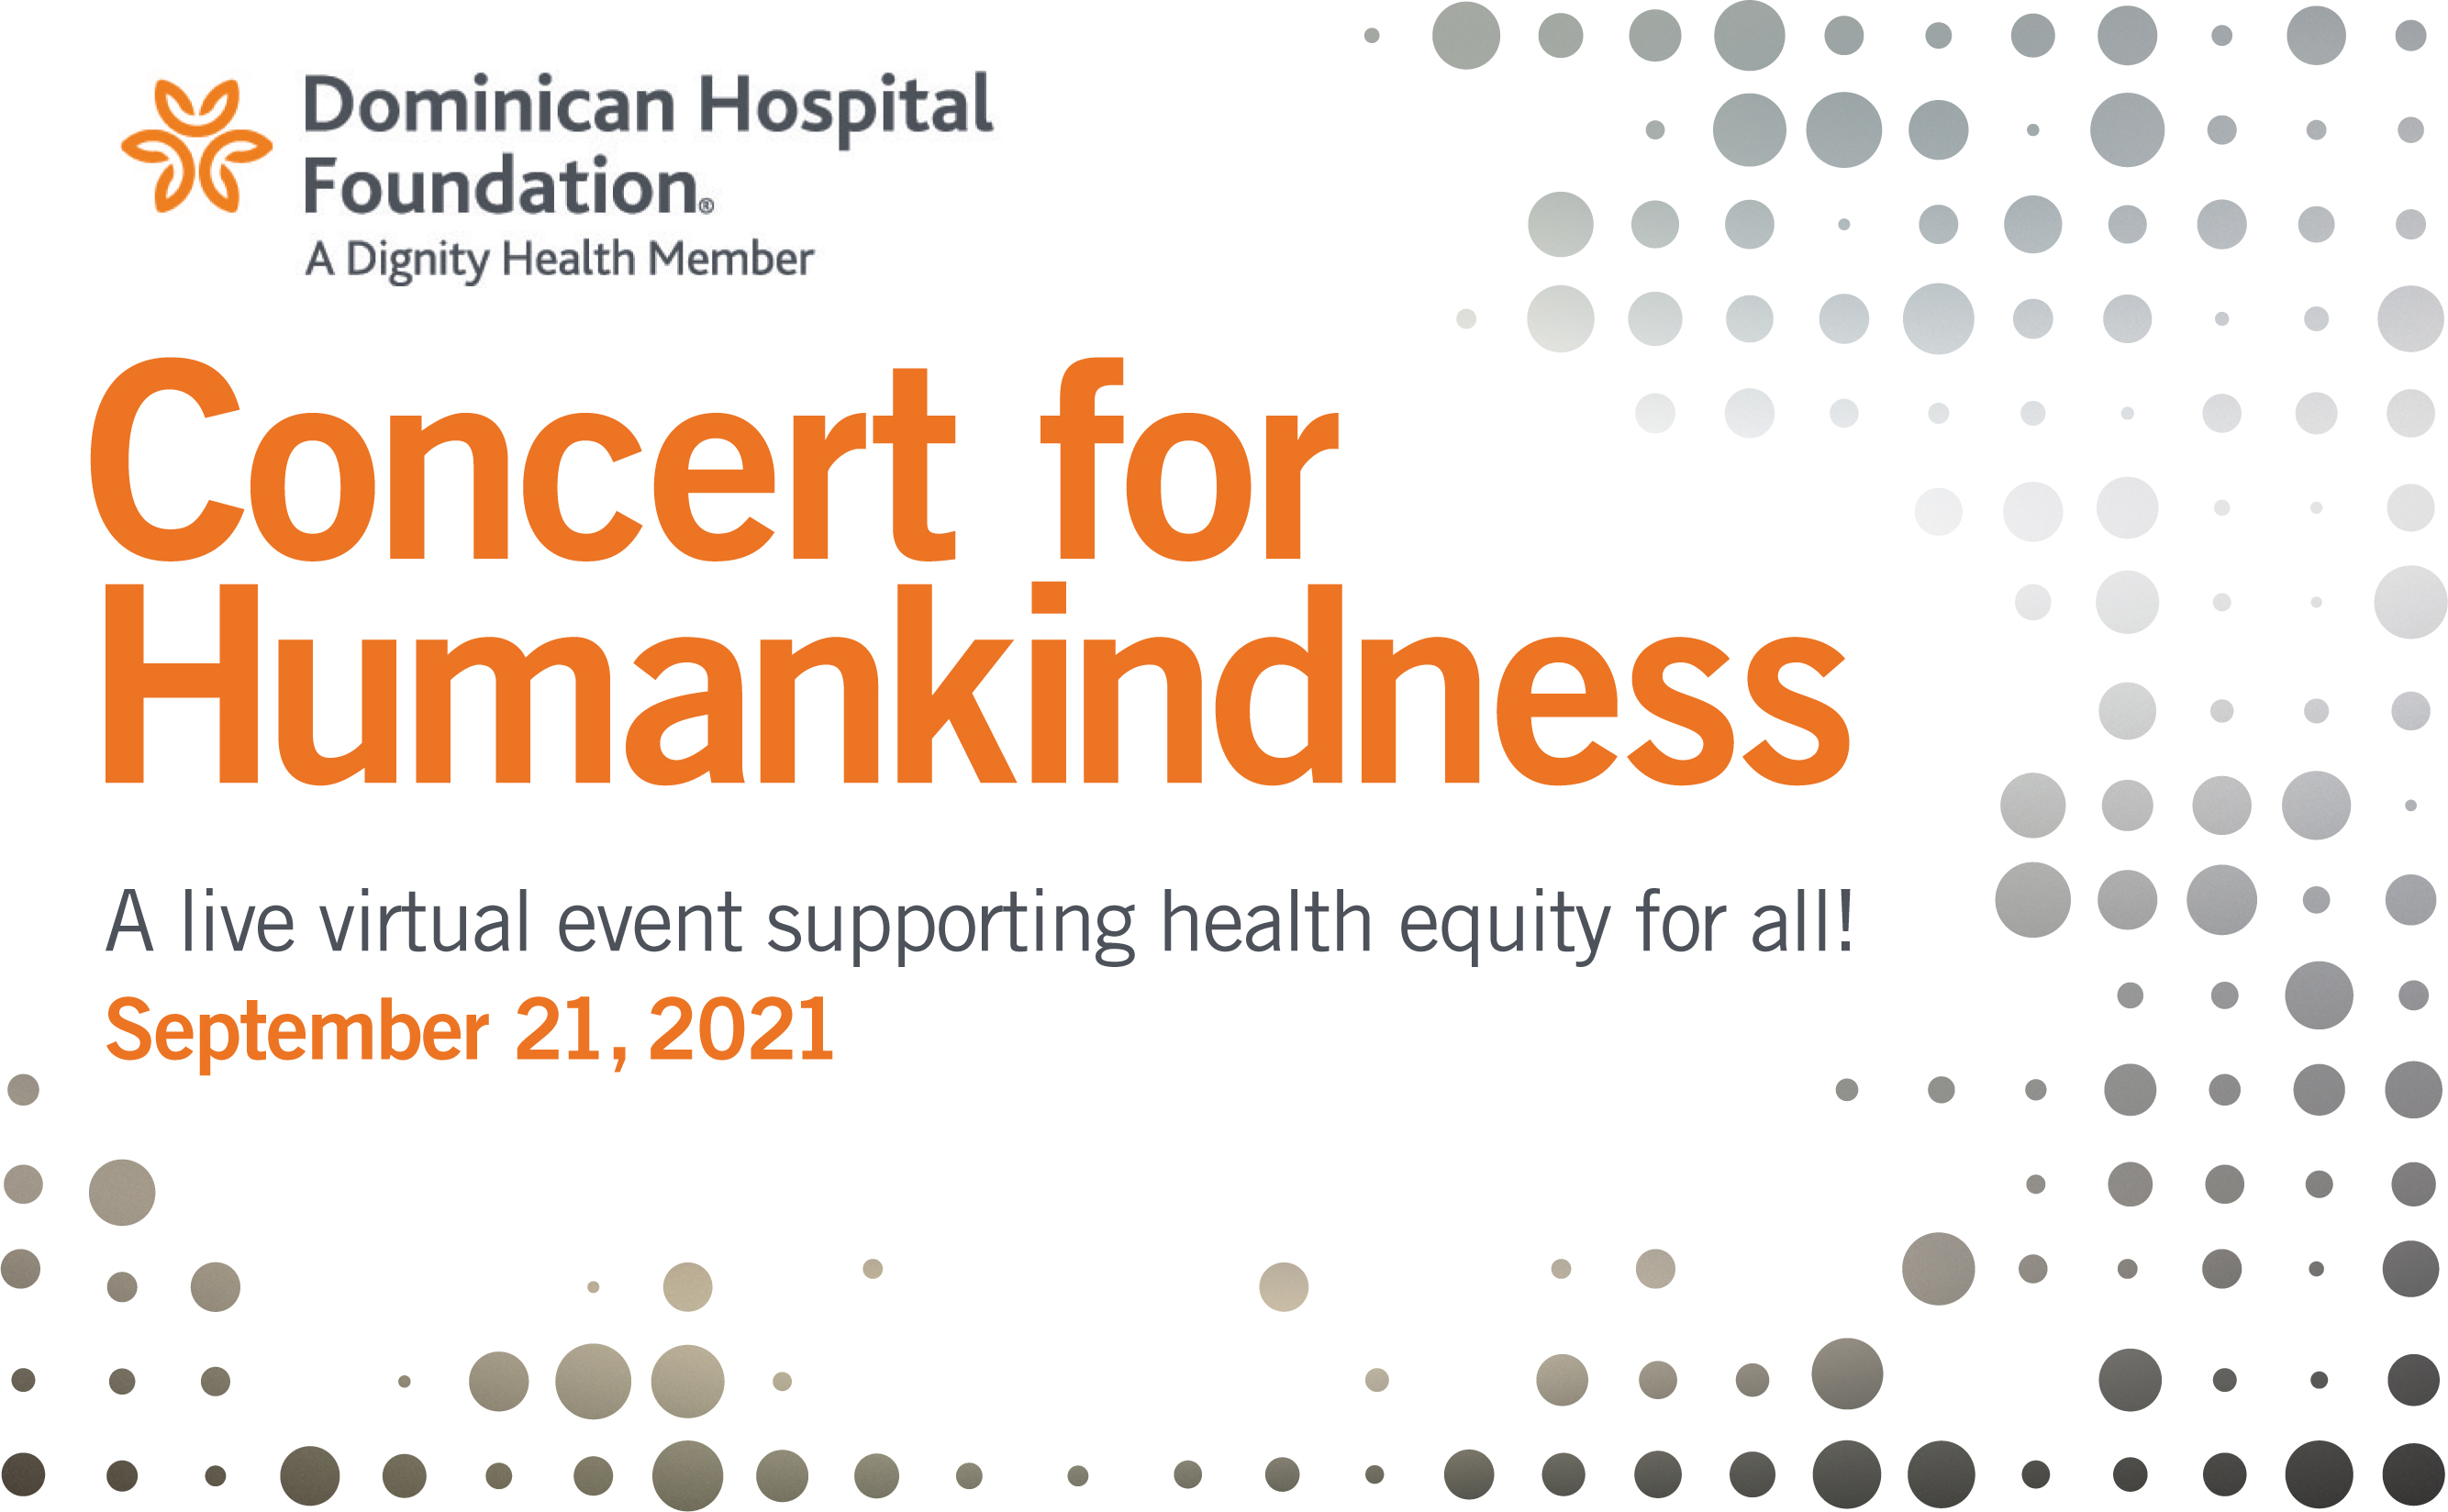 Concert-for-Humankindness-DHF-Email-Banner-300ppi-Use-this-one